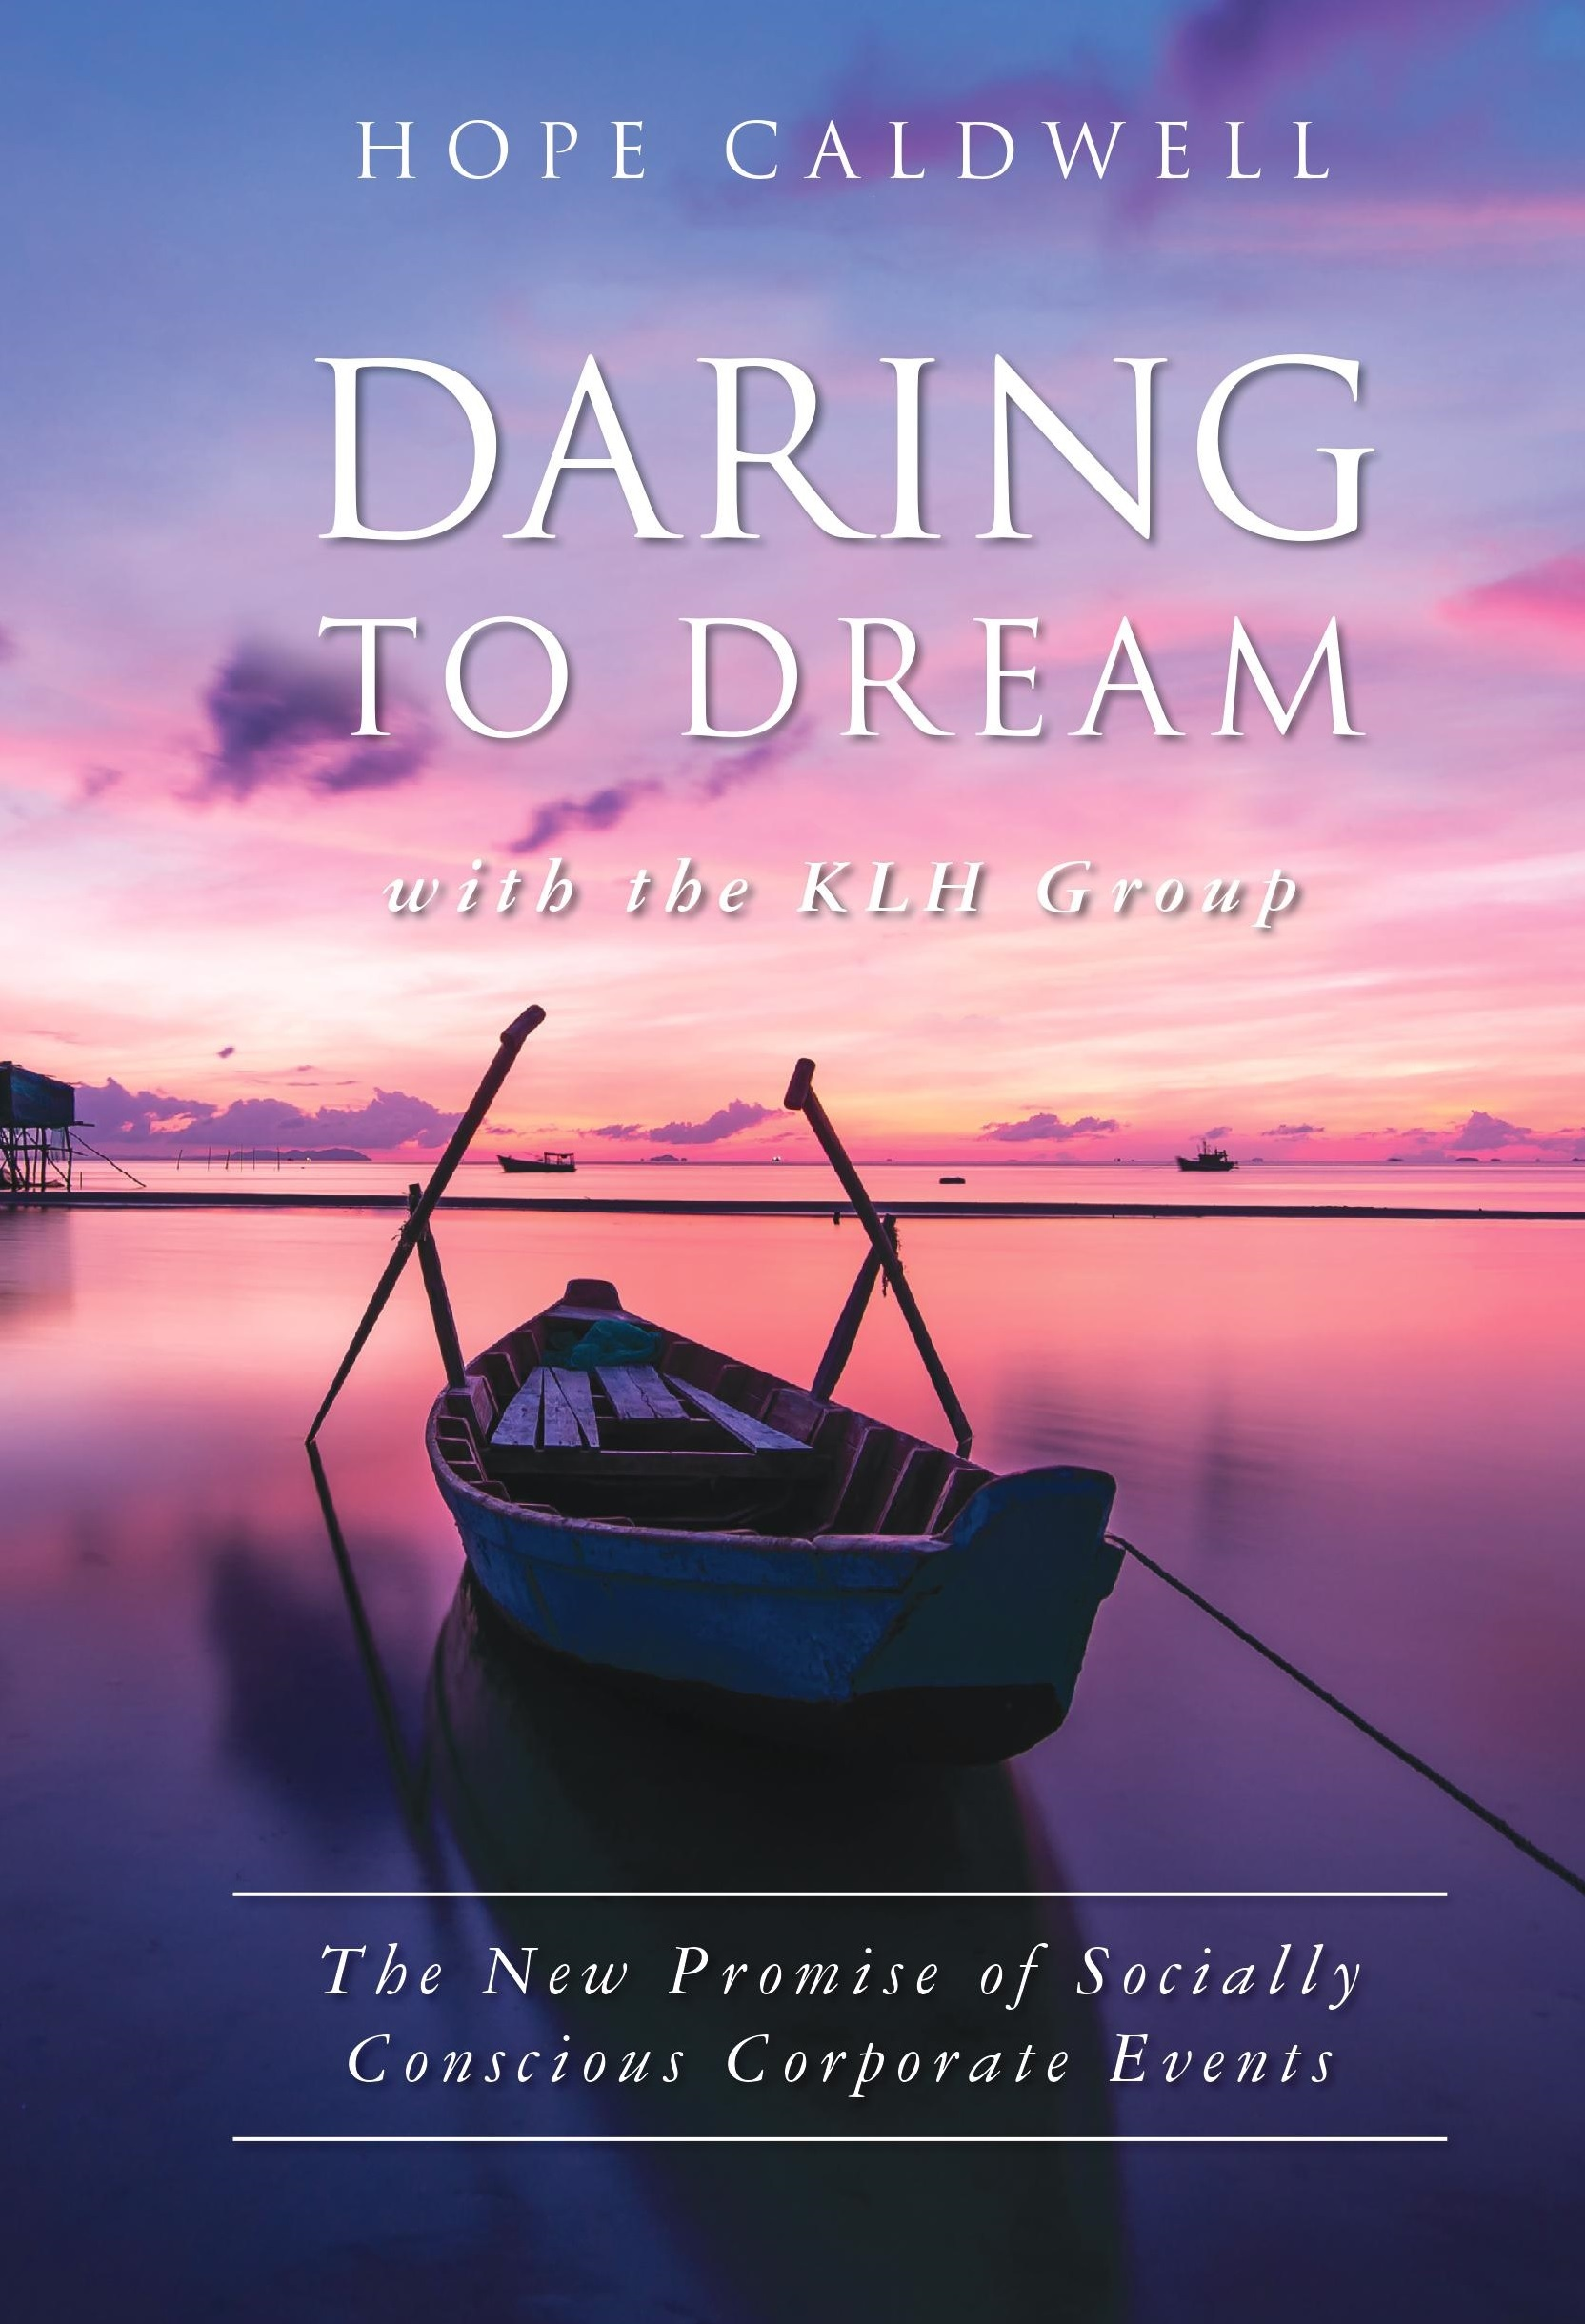 Daring to Dream is available now on Amazon